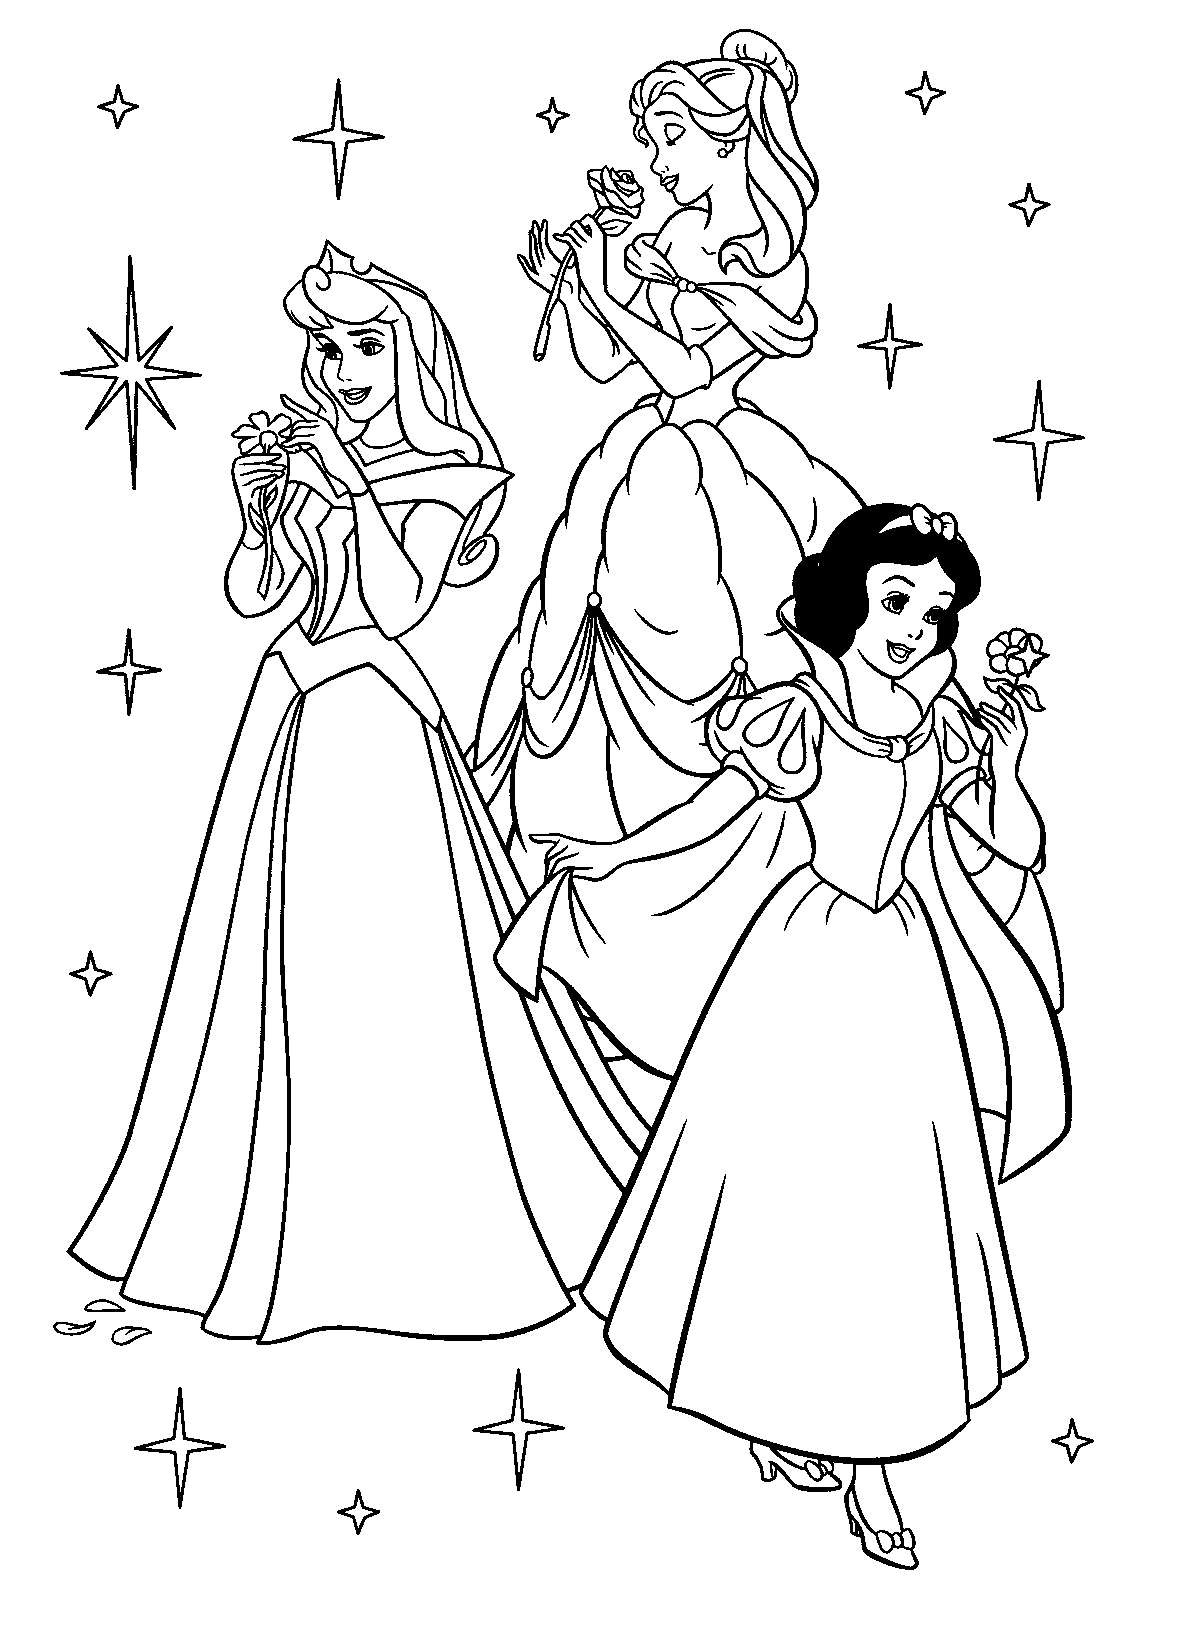 coloring book pages disney princesses - photo#1